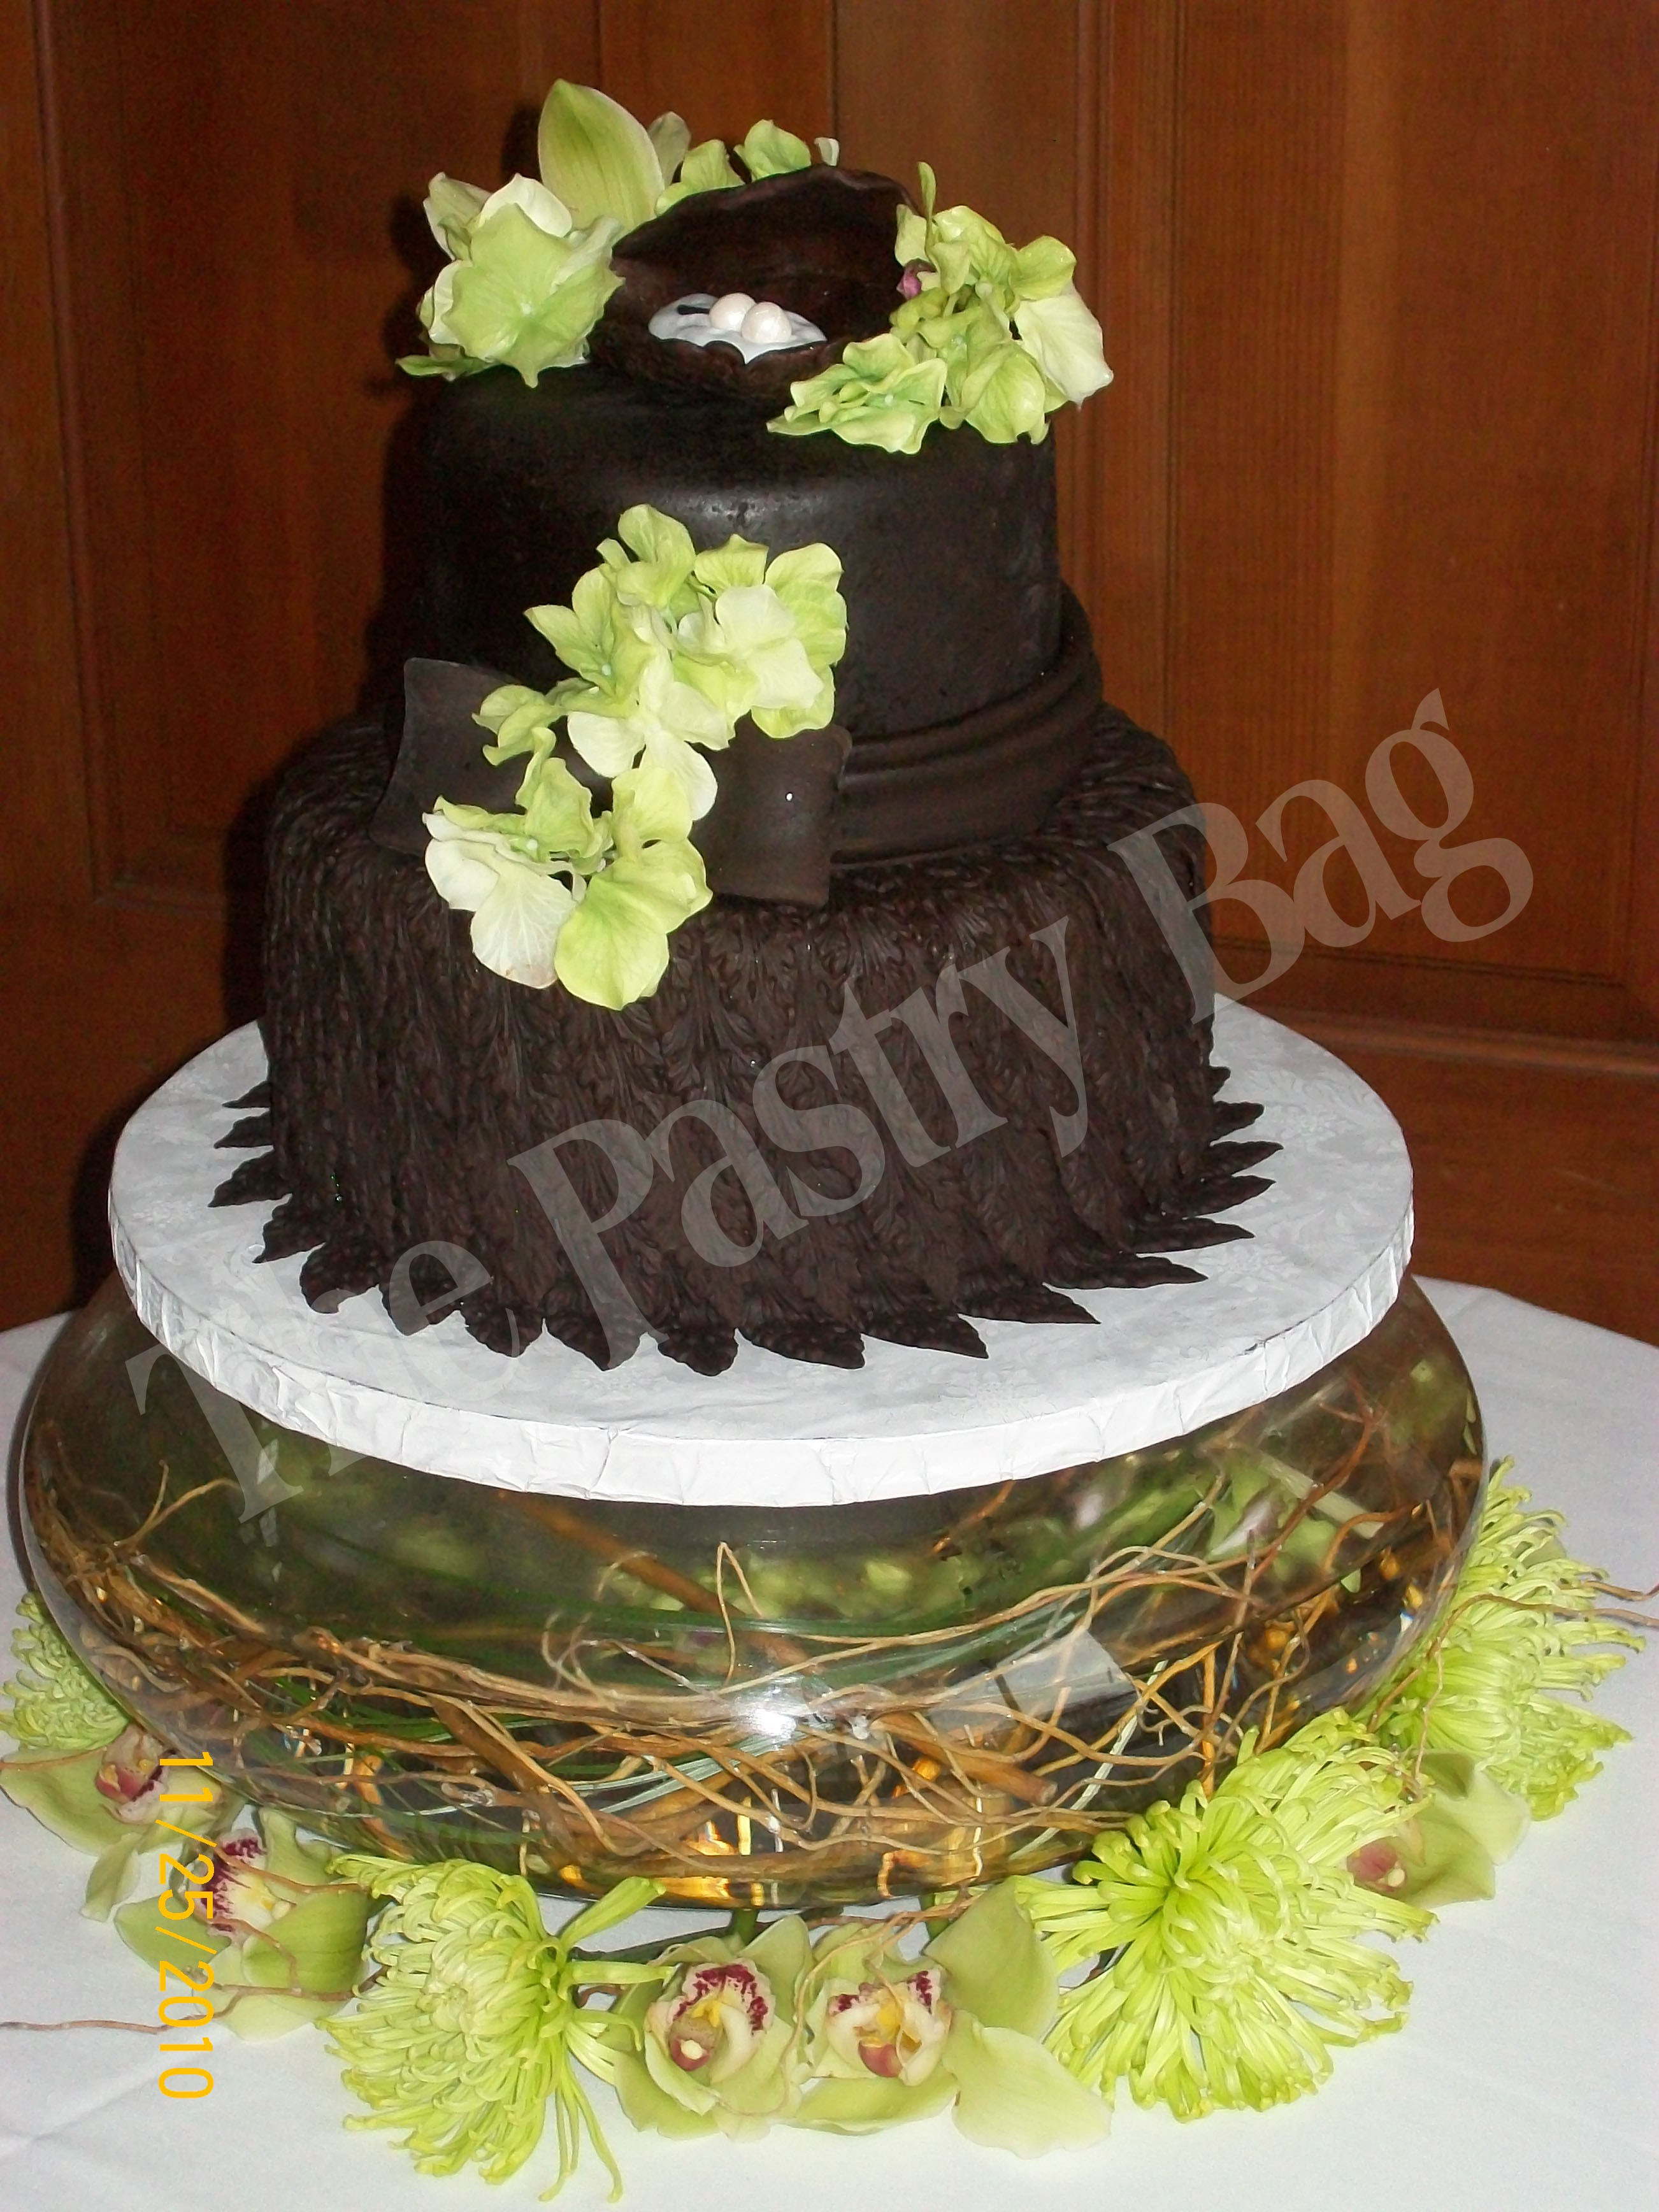 Mail Order Wedding Cakes  Mail order Wedding Cakes Fresh the Pastry Bag Home